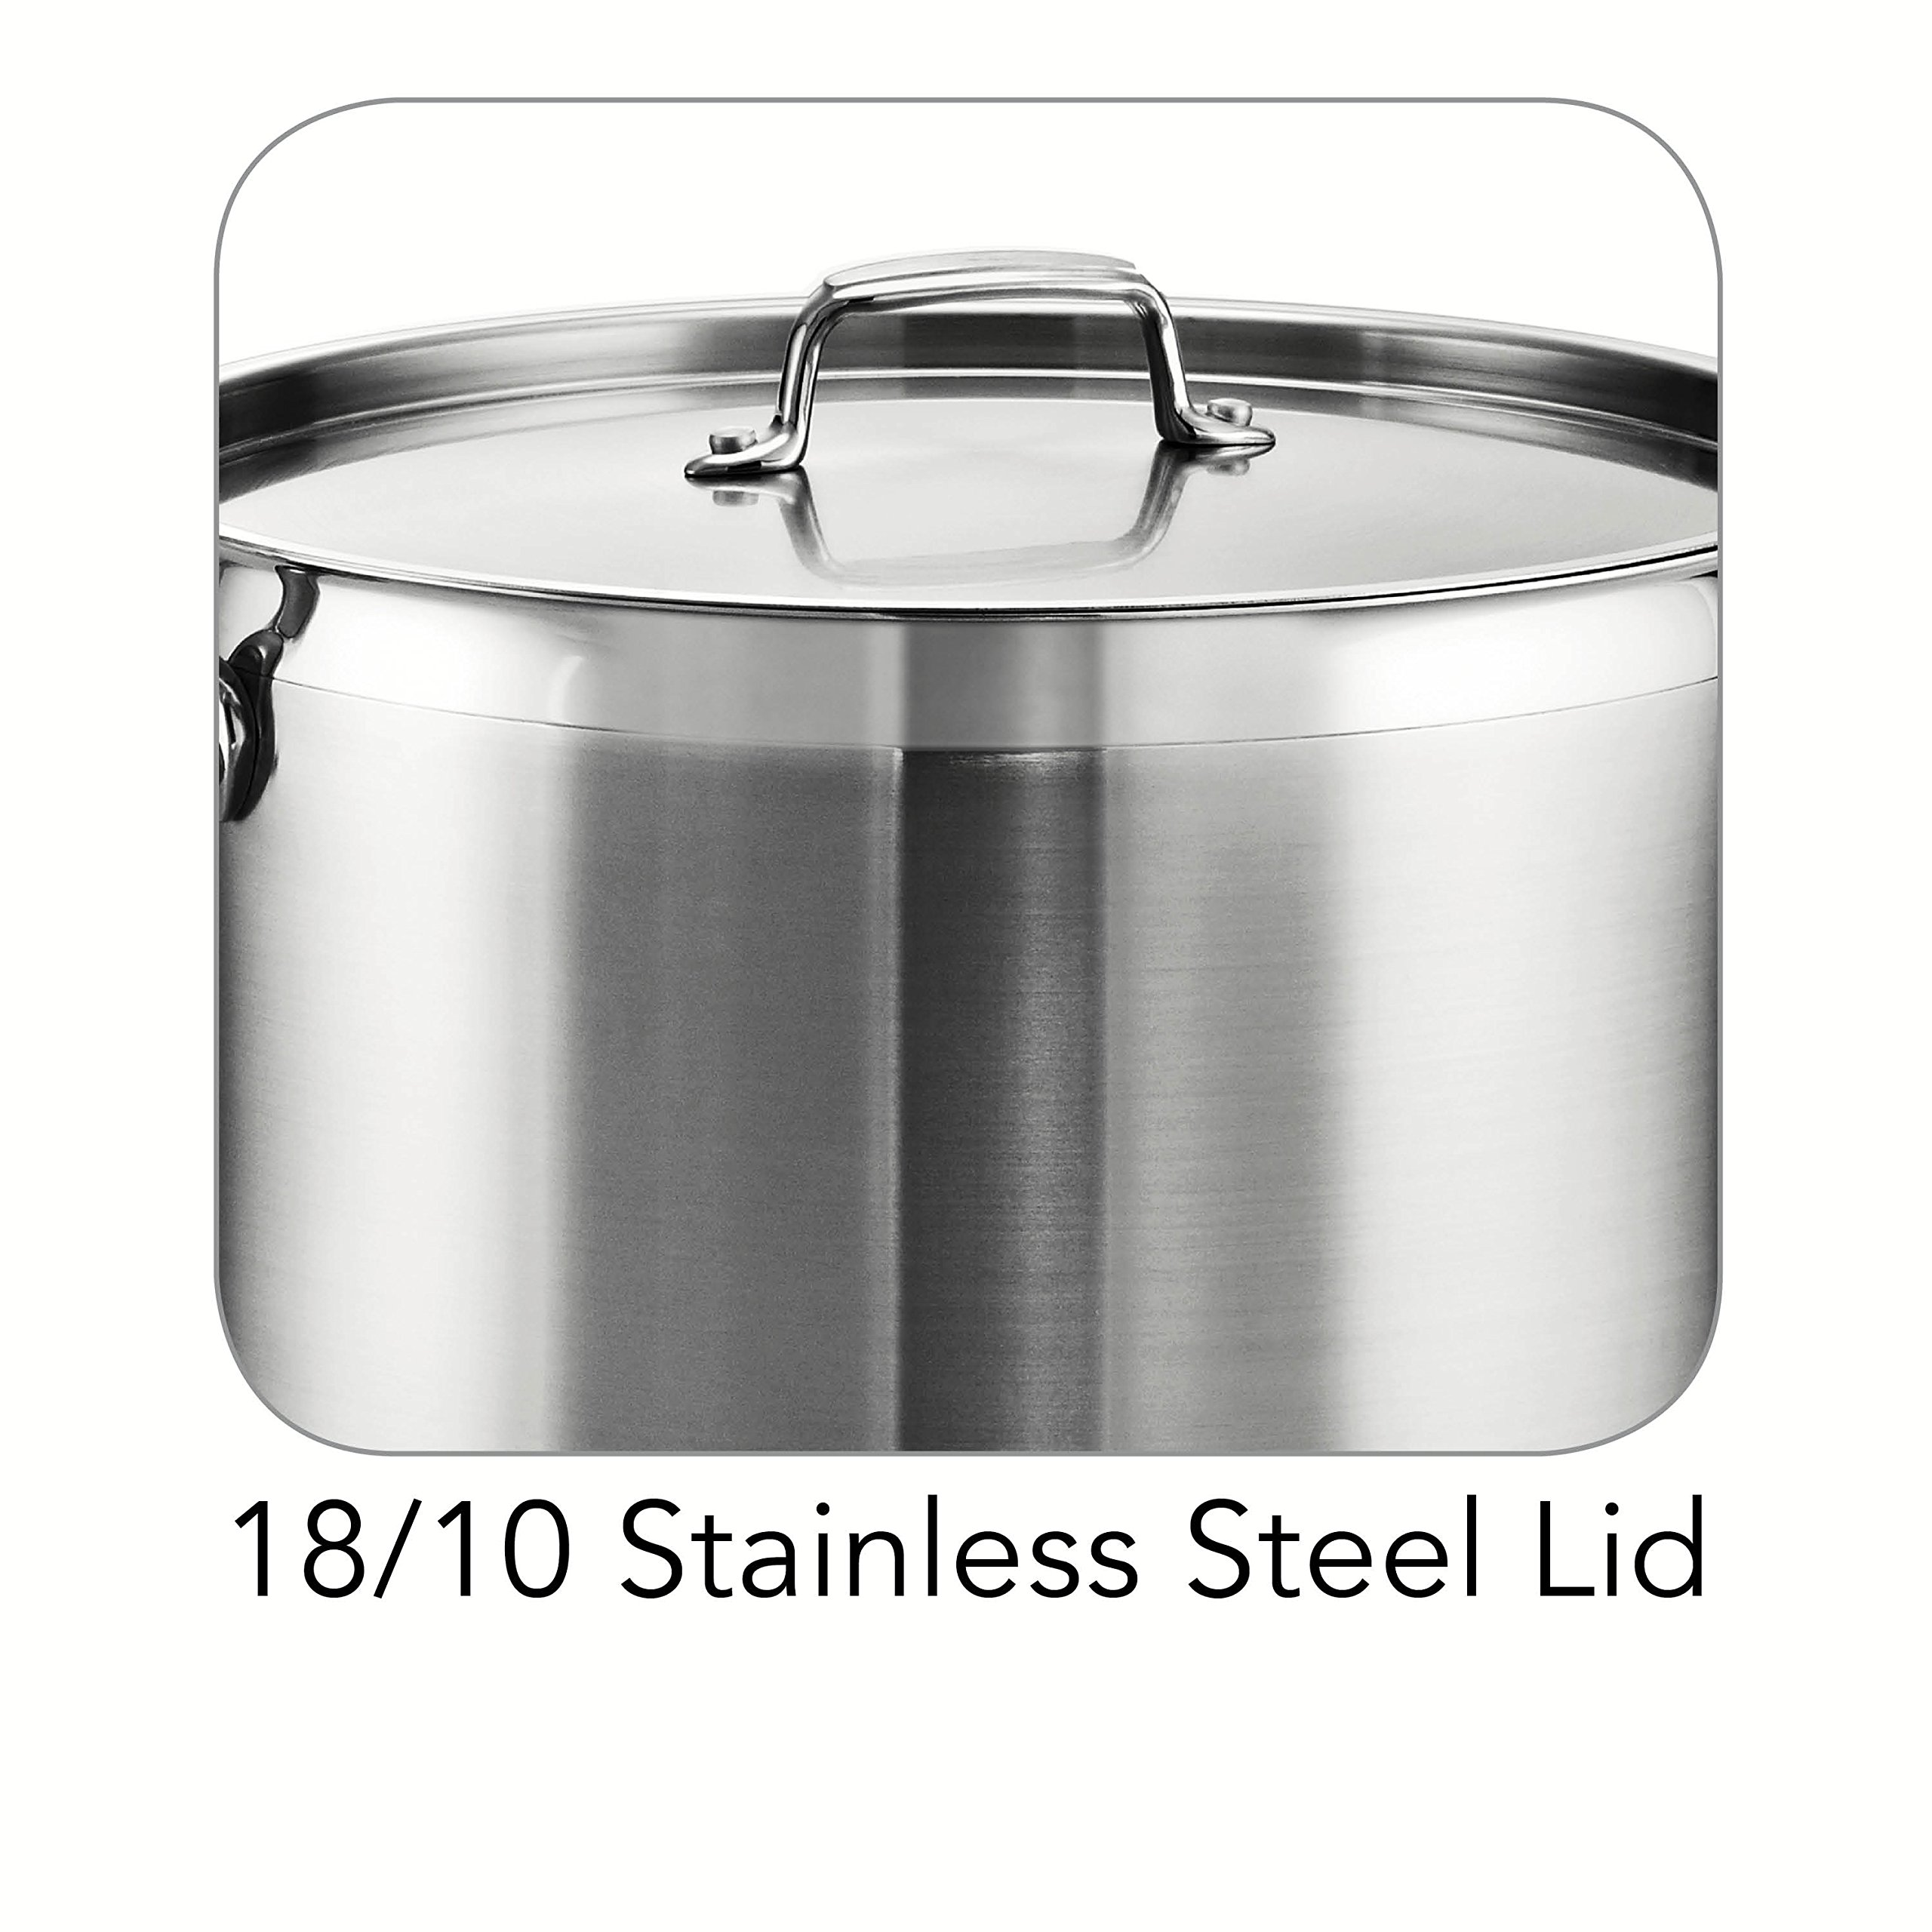 Tramontina 80120/003DS Tramontina Gourmet Stainless Steel Covered Stock Pot, 24-Quart by Tramontina (Image #4)